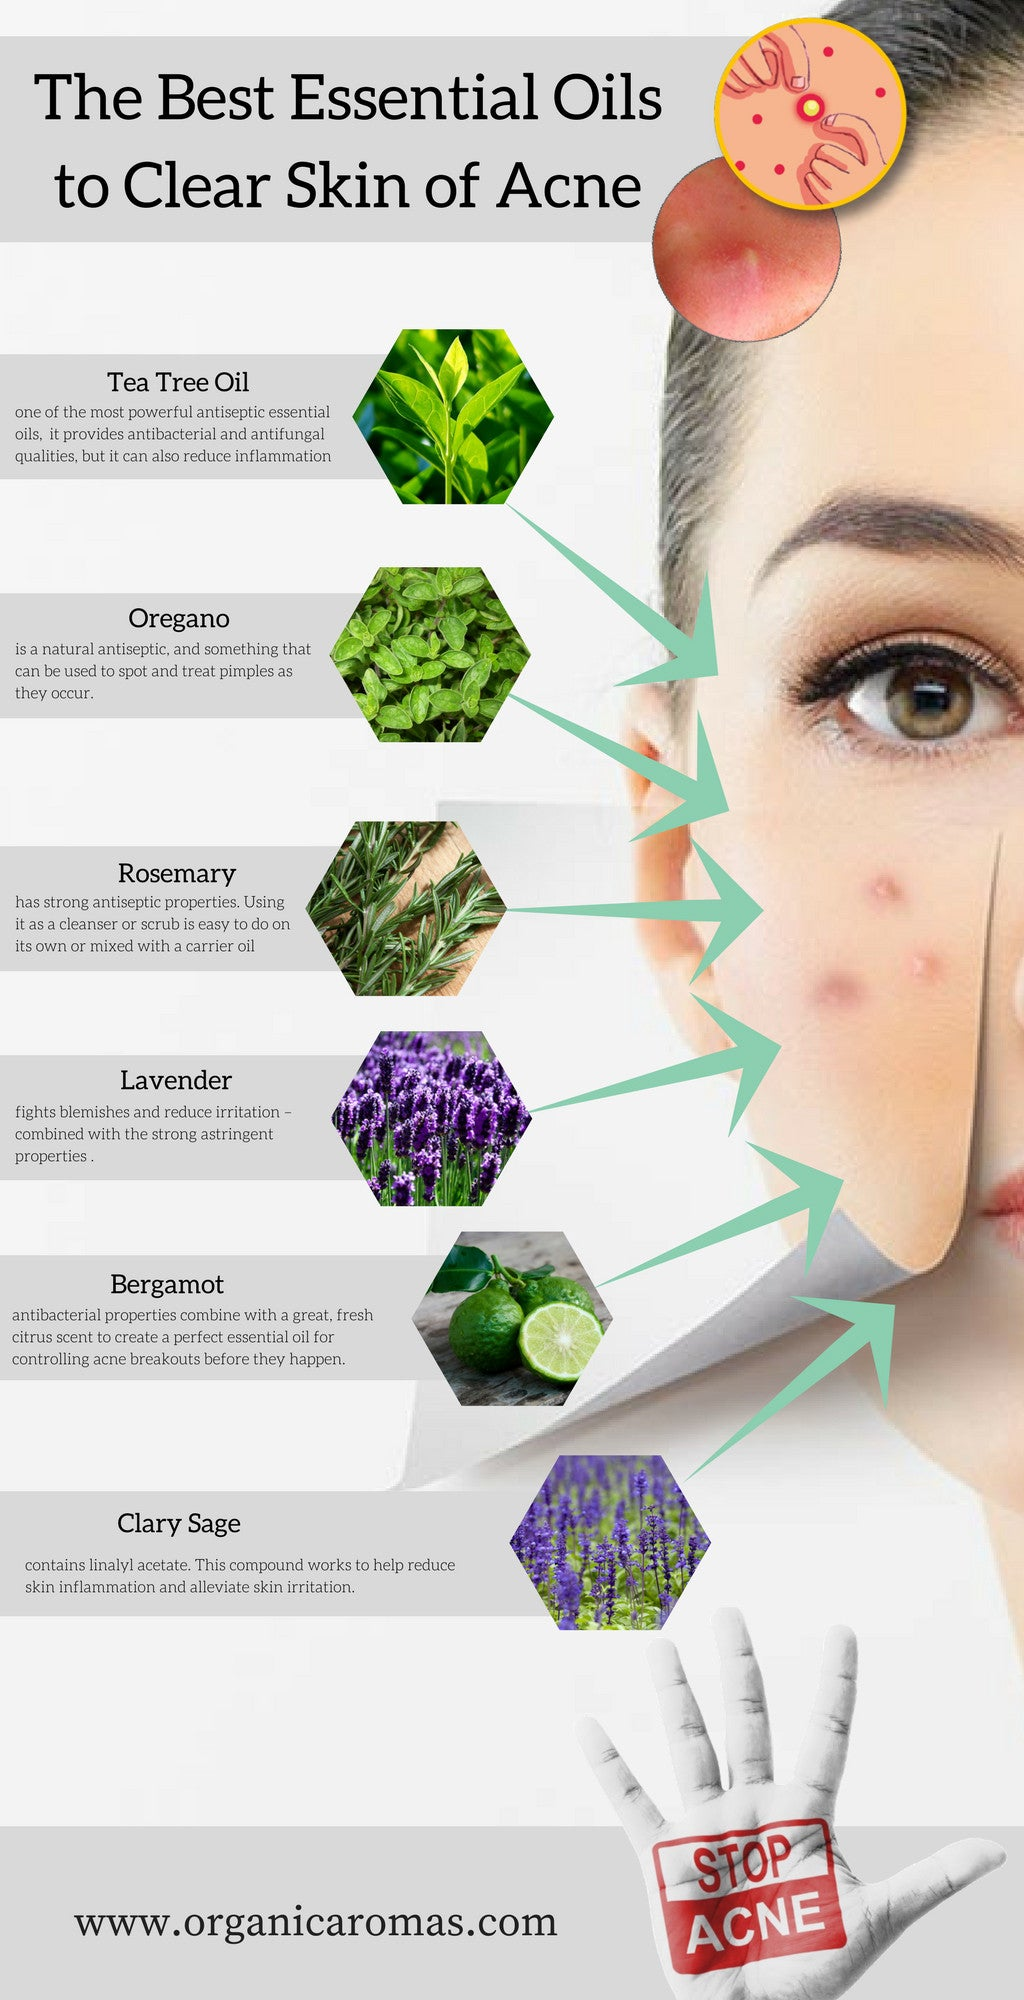 The Best Essential Oils to Clear Skin of Acne